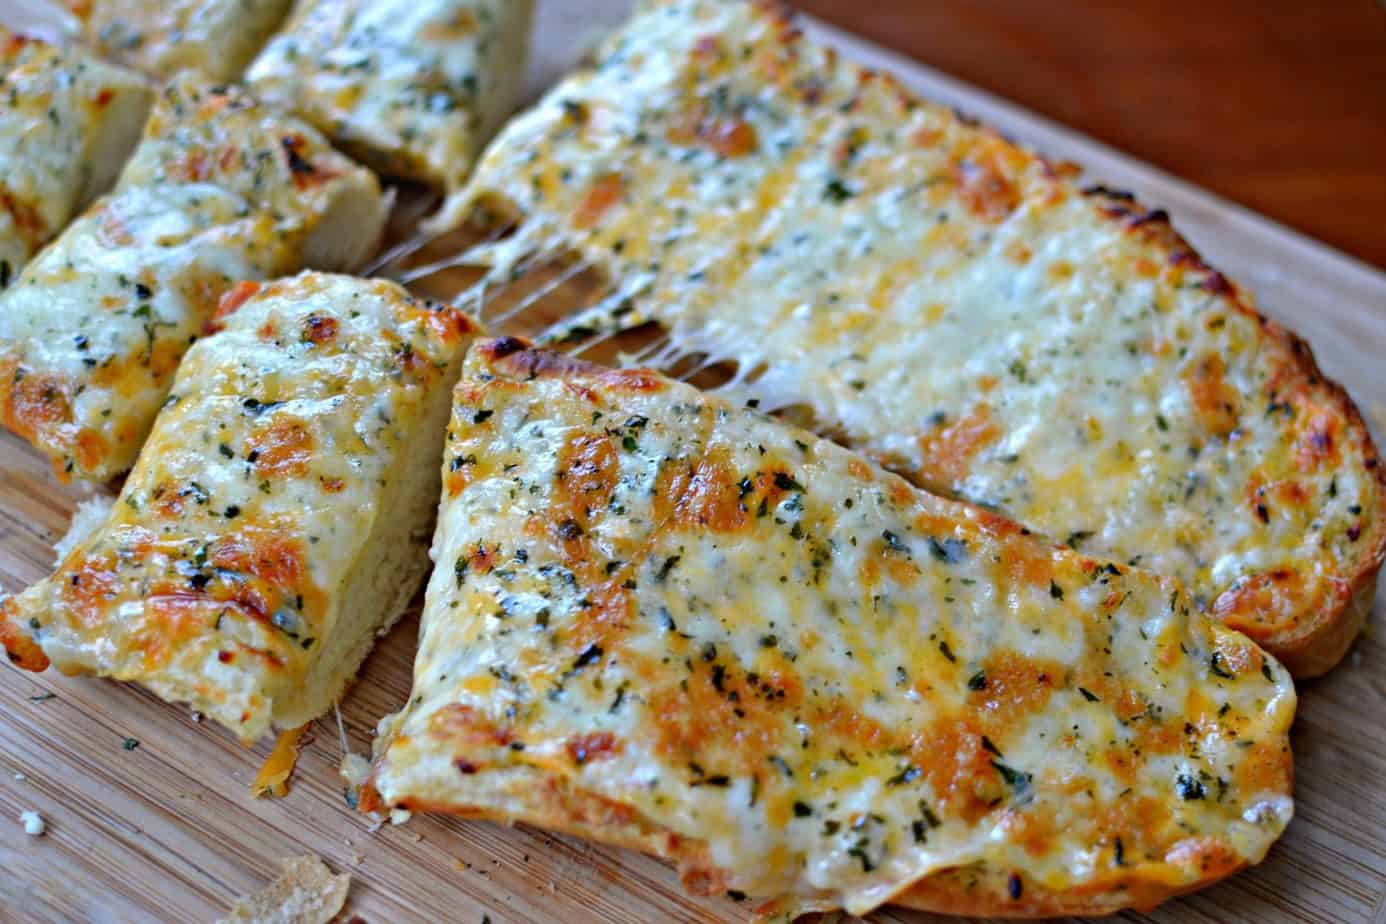 A easy to make loaf of French bread topped with garlic butter, mozzarella, cheddar, provolone and baked to perfection.